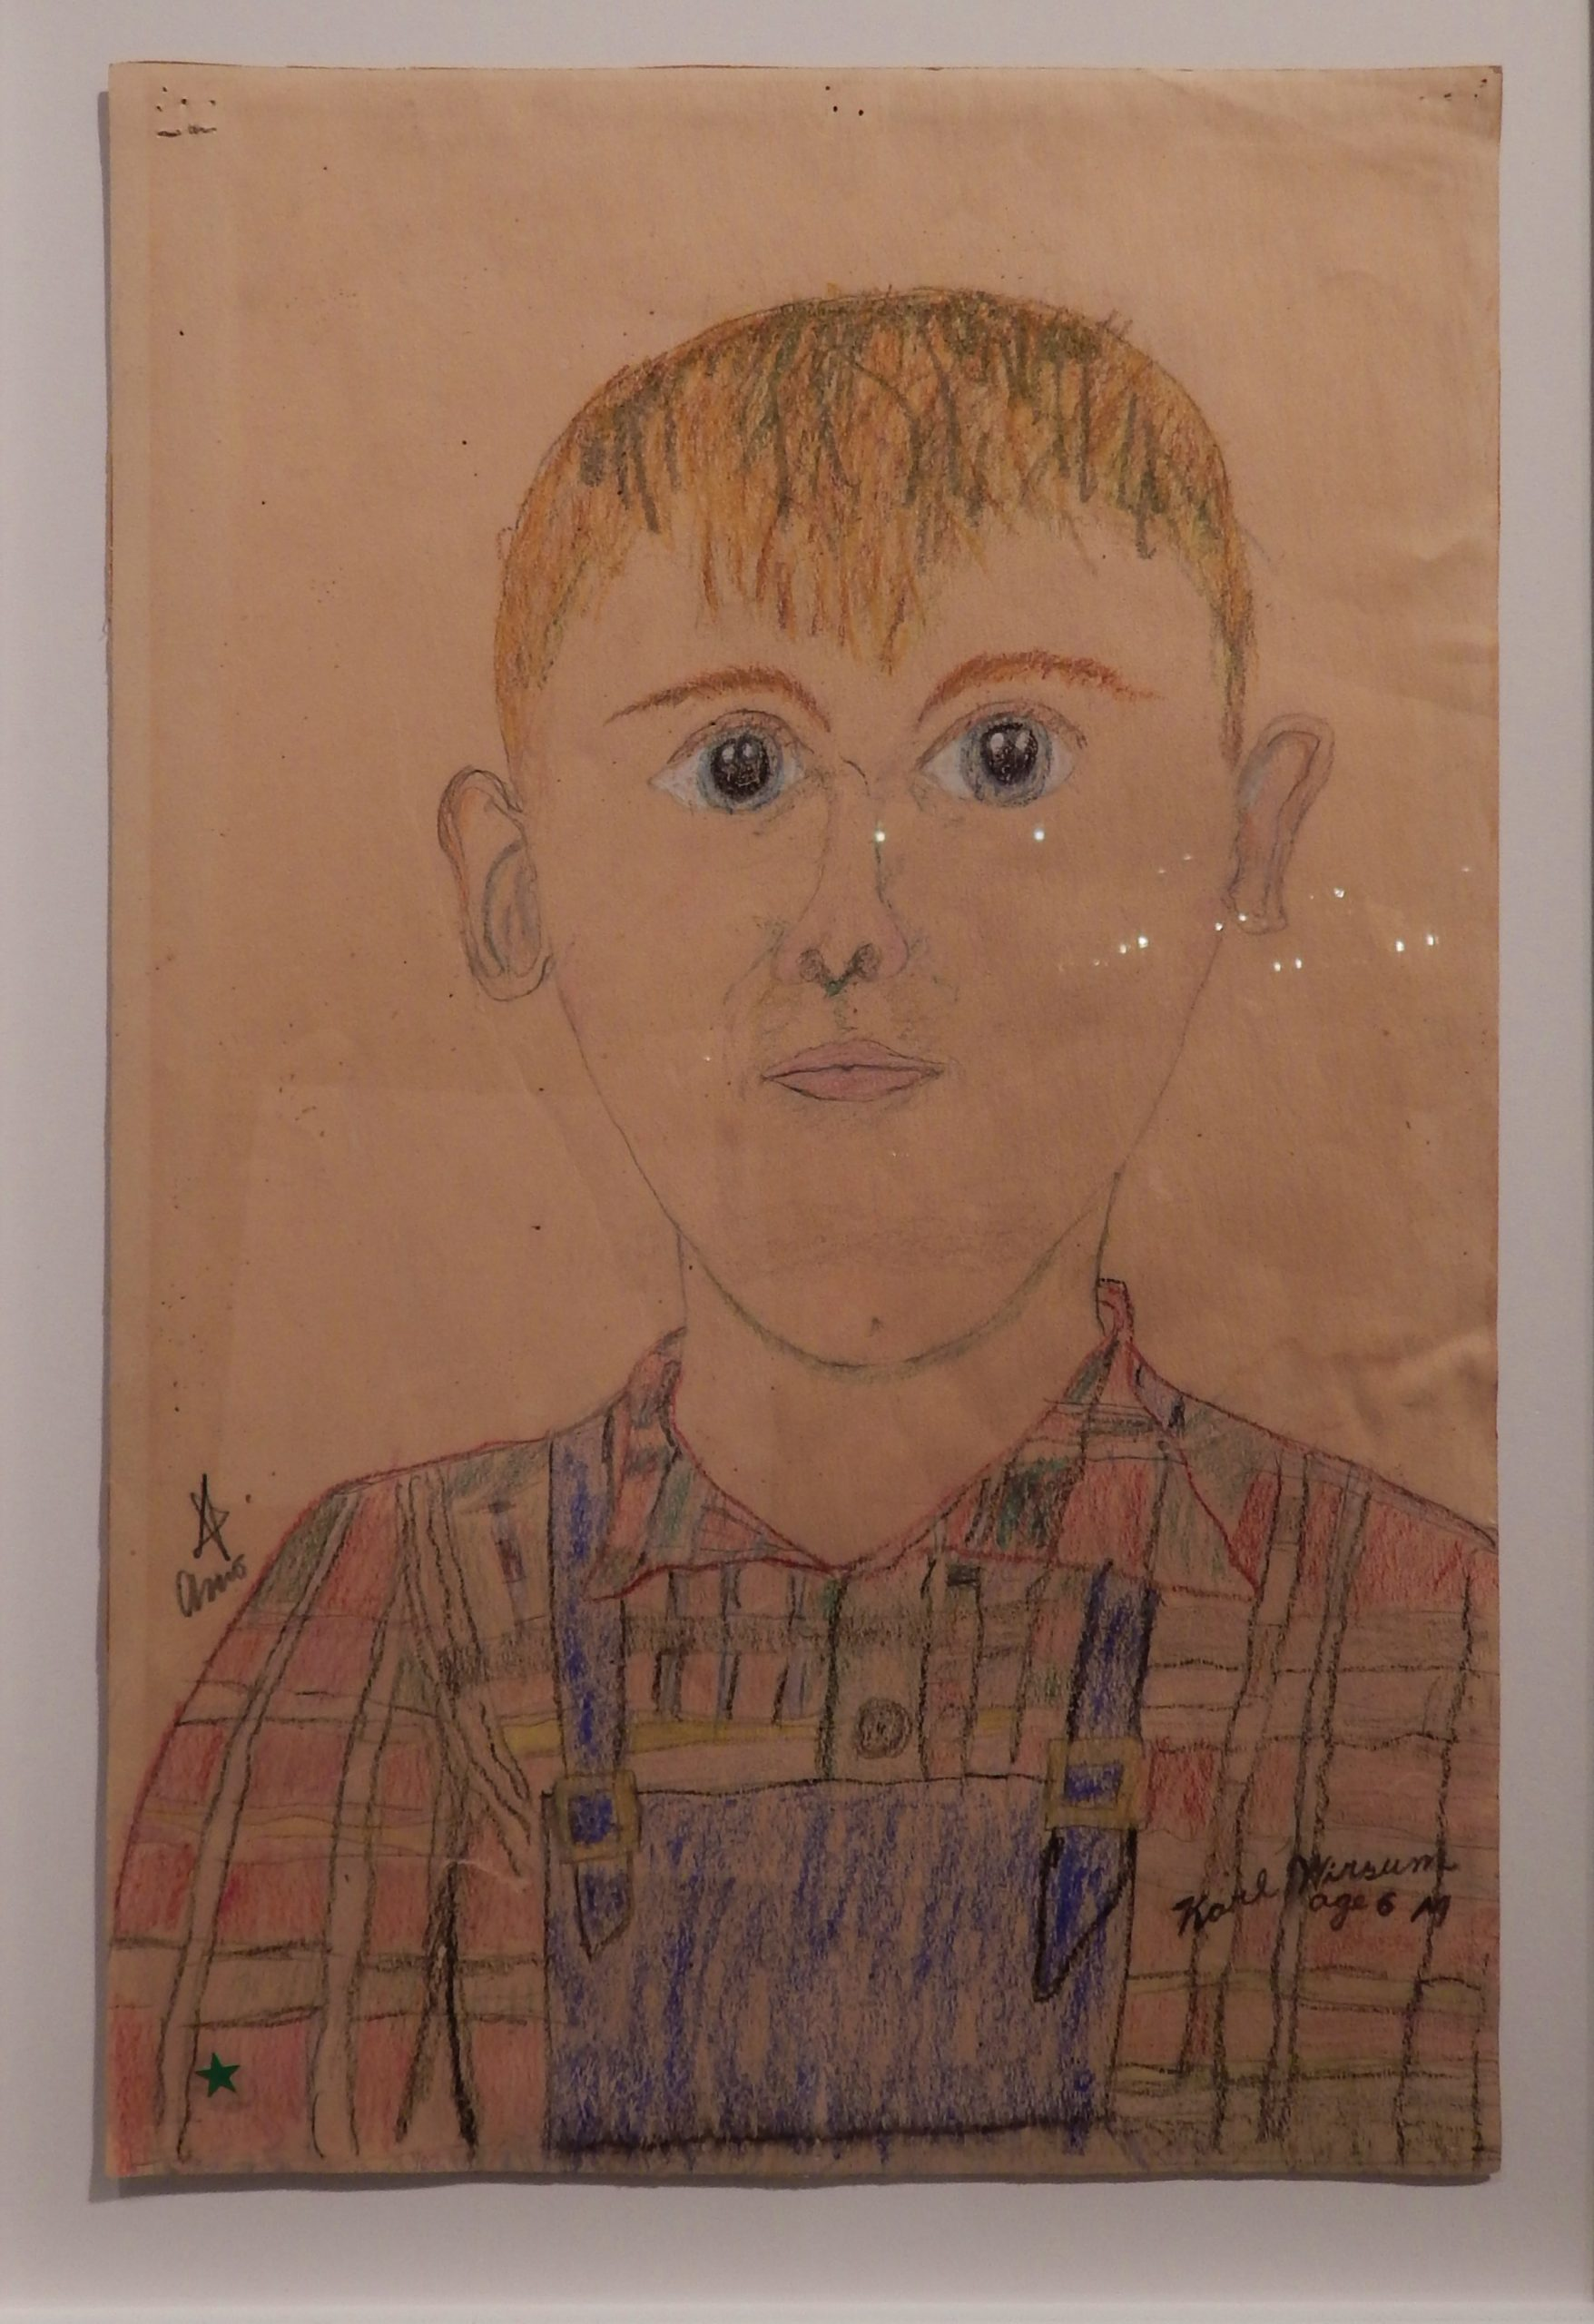 A Karl Wirsum self-portrait done at age six  (1945), at ProjectArt